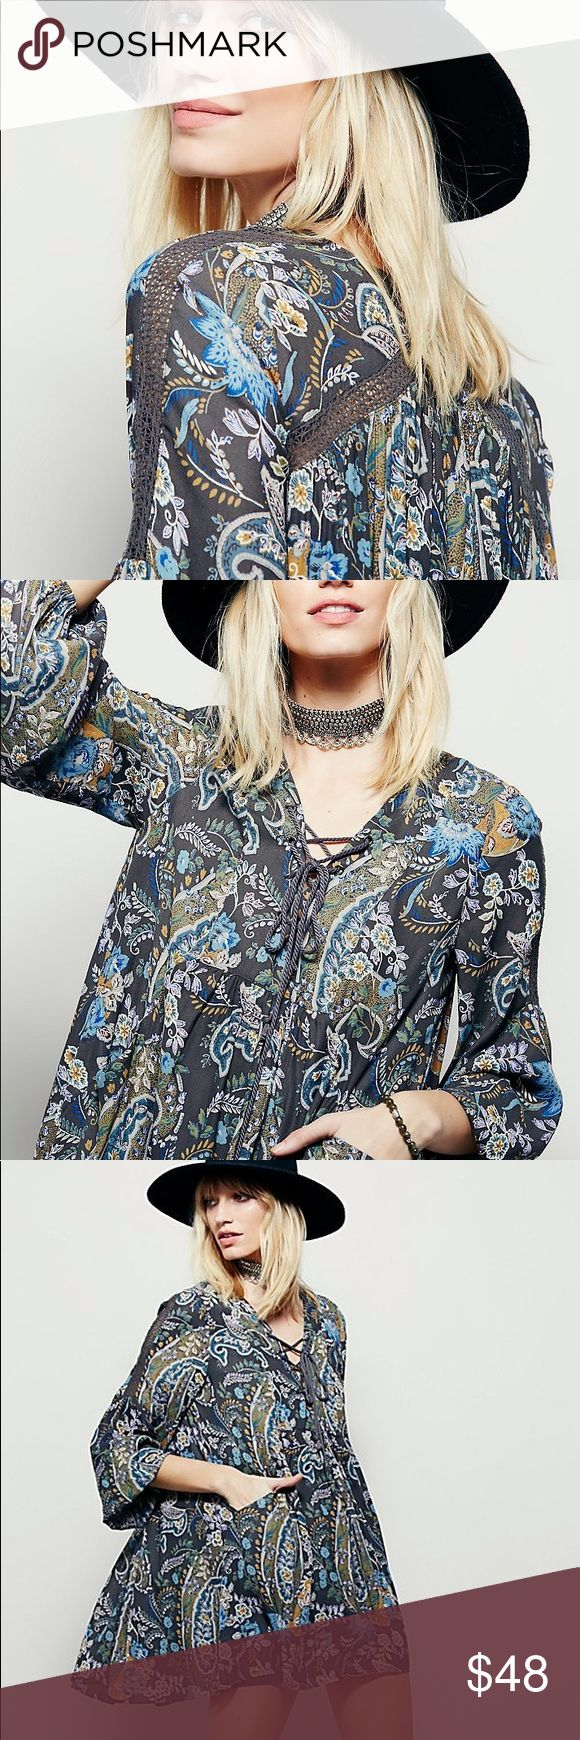 """Swingy Lace-Up Rain or Shine DRESS Paisley Multi BRAND NEW!! In a shapeless, swingy silhouette, this effortless printed mini dress is perfect for anything! Lace-up detailing on the neckline, crochet trim, and elastic band on the cuffs. Front pockets. Lined.🌟Similar style by Free People.🌟  S: Bust: 34.6""""/Length: 31.2"""" M: Bust: 36.2""""/Length: 31.8"""" L: Bust: 37.8""""/Length: 32.4""""  🌟🌟Item is Brand New, direct from the Manufacturer, & Sealed in Pkg. 🌟🌟 austin gal Dresses"""